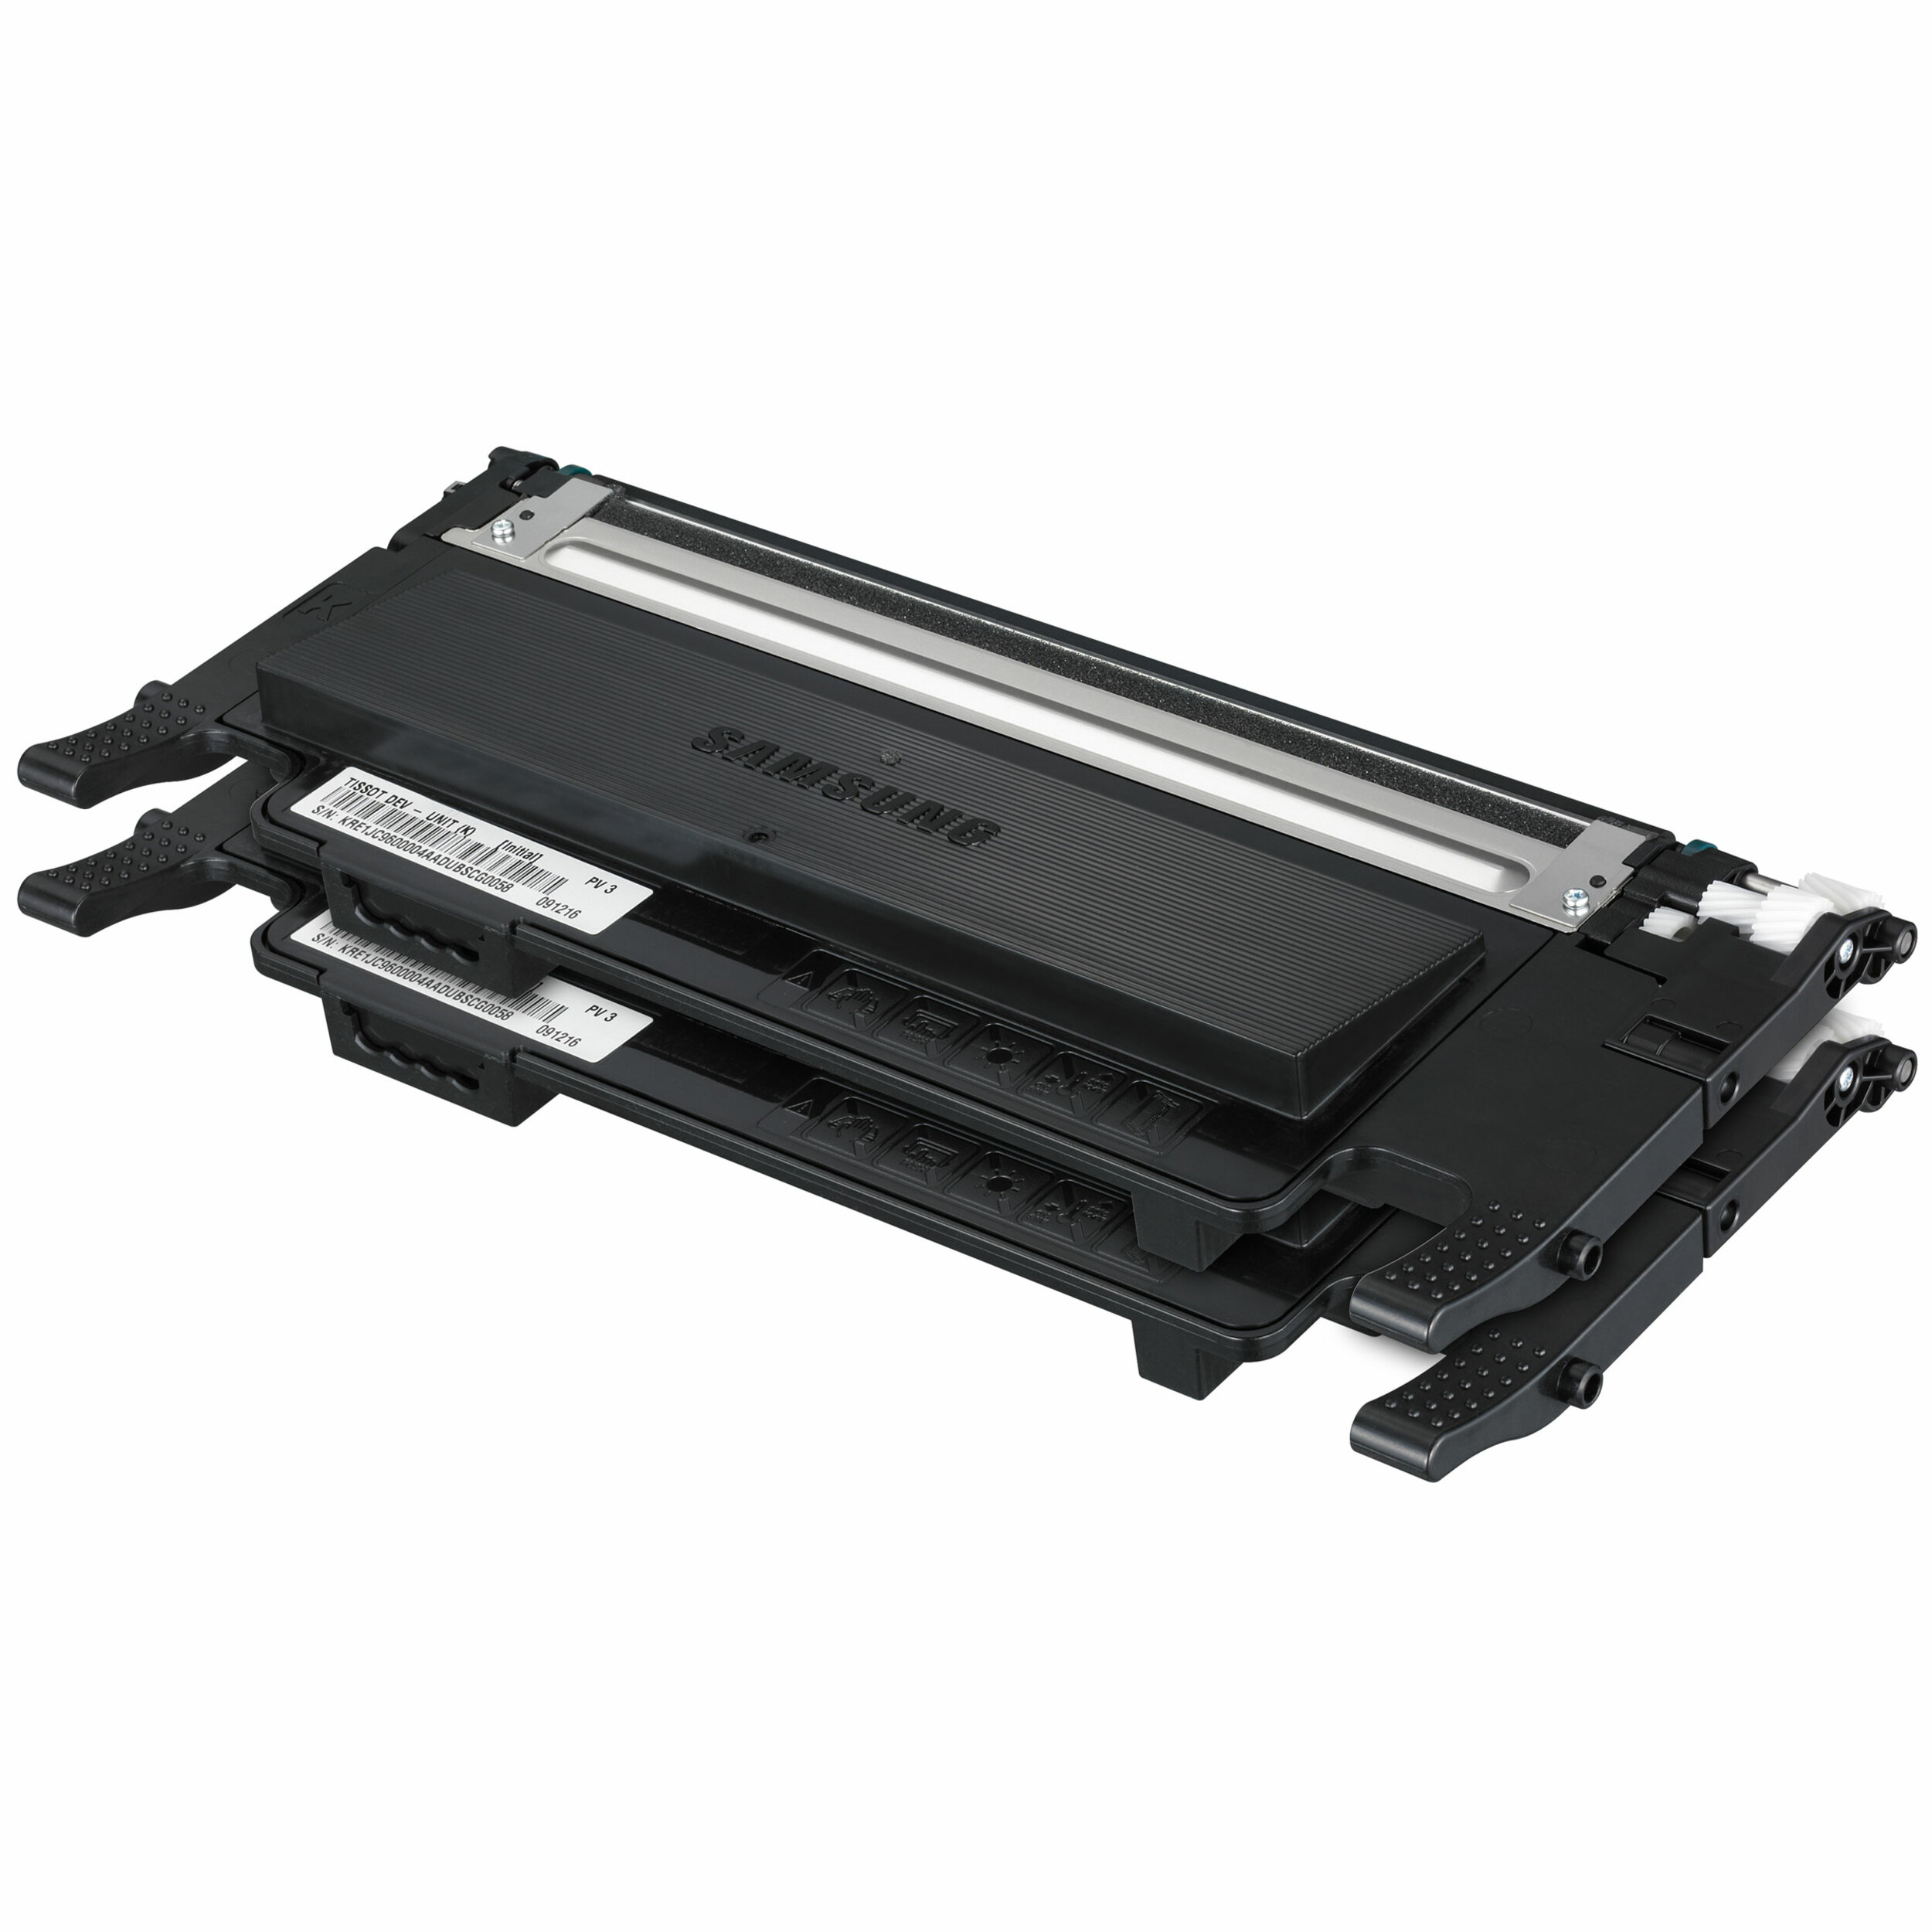 Samsung CLT-P4072B/ELS Toner Cartridge - Black